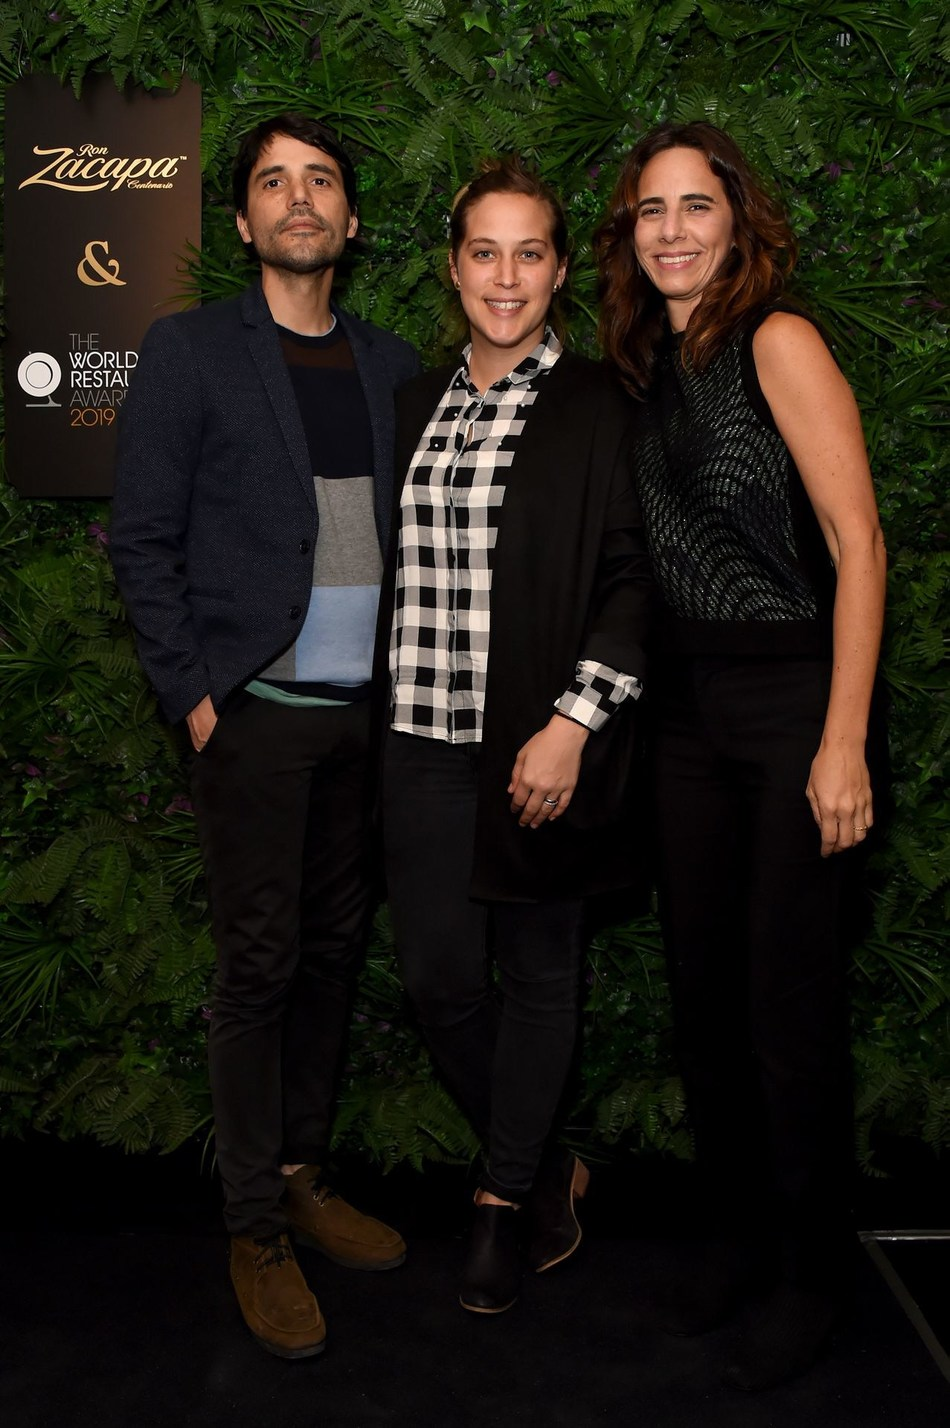 (L-R) Virgilo Martinez, Pia Leon and Milena Martinez attend the official Ron Zacapa rum opening event of The World Restaurant Awards 2019 at Malro on February 17th, 2019 in Paris, France. The exclusive event is ahead of the inaugural edition of The World Restaurant Awards being held at the Palais Brongniart on February 18th. (Photo by David M. Benett/Dave Benett/Getty Images for Zacapa Rum)